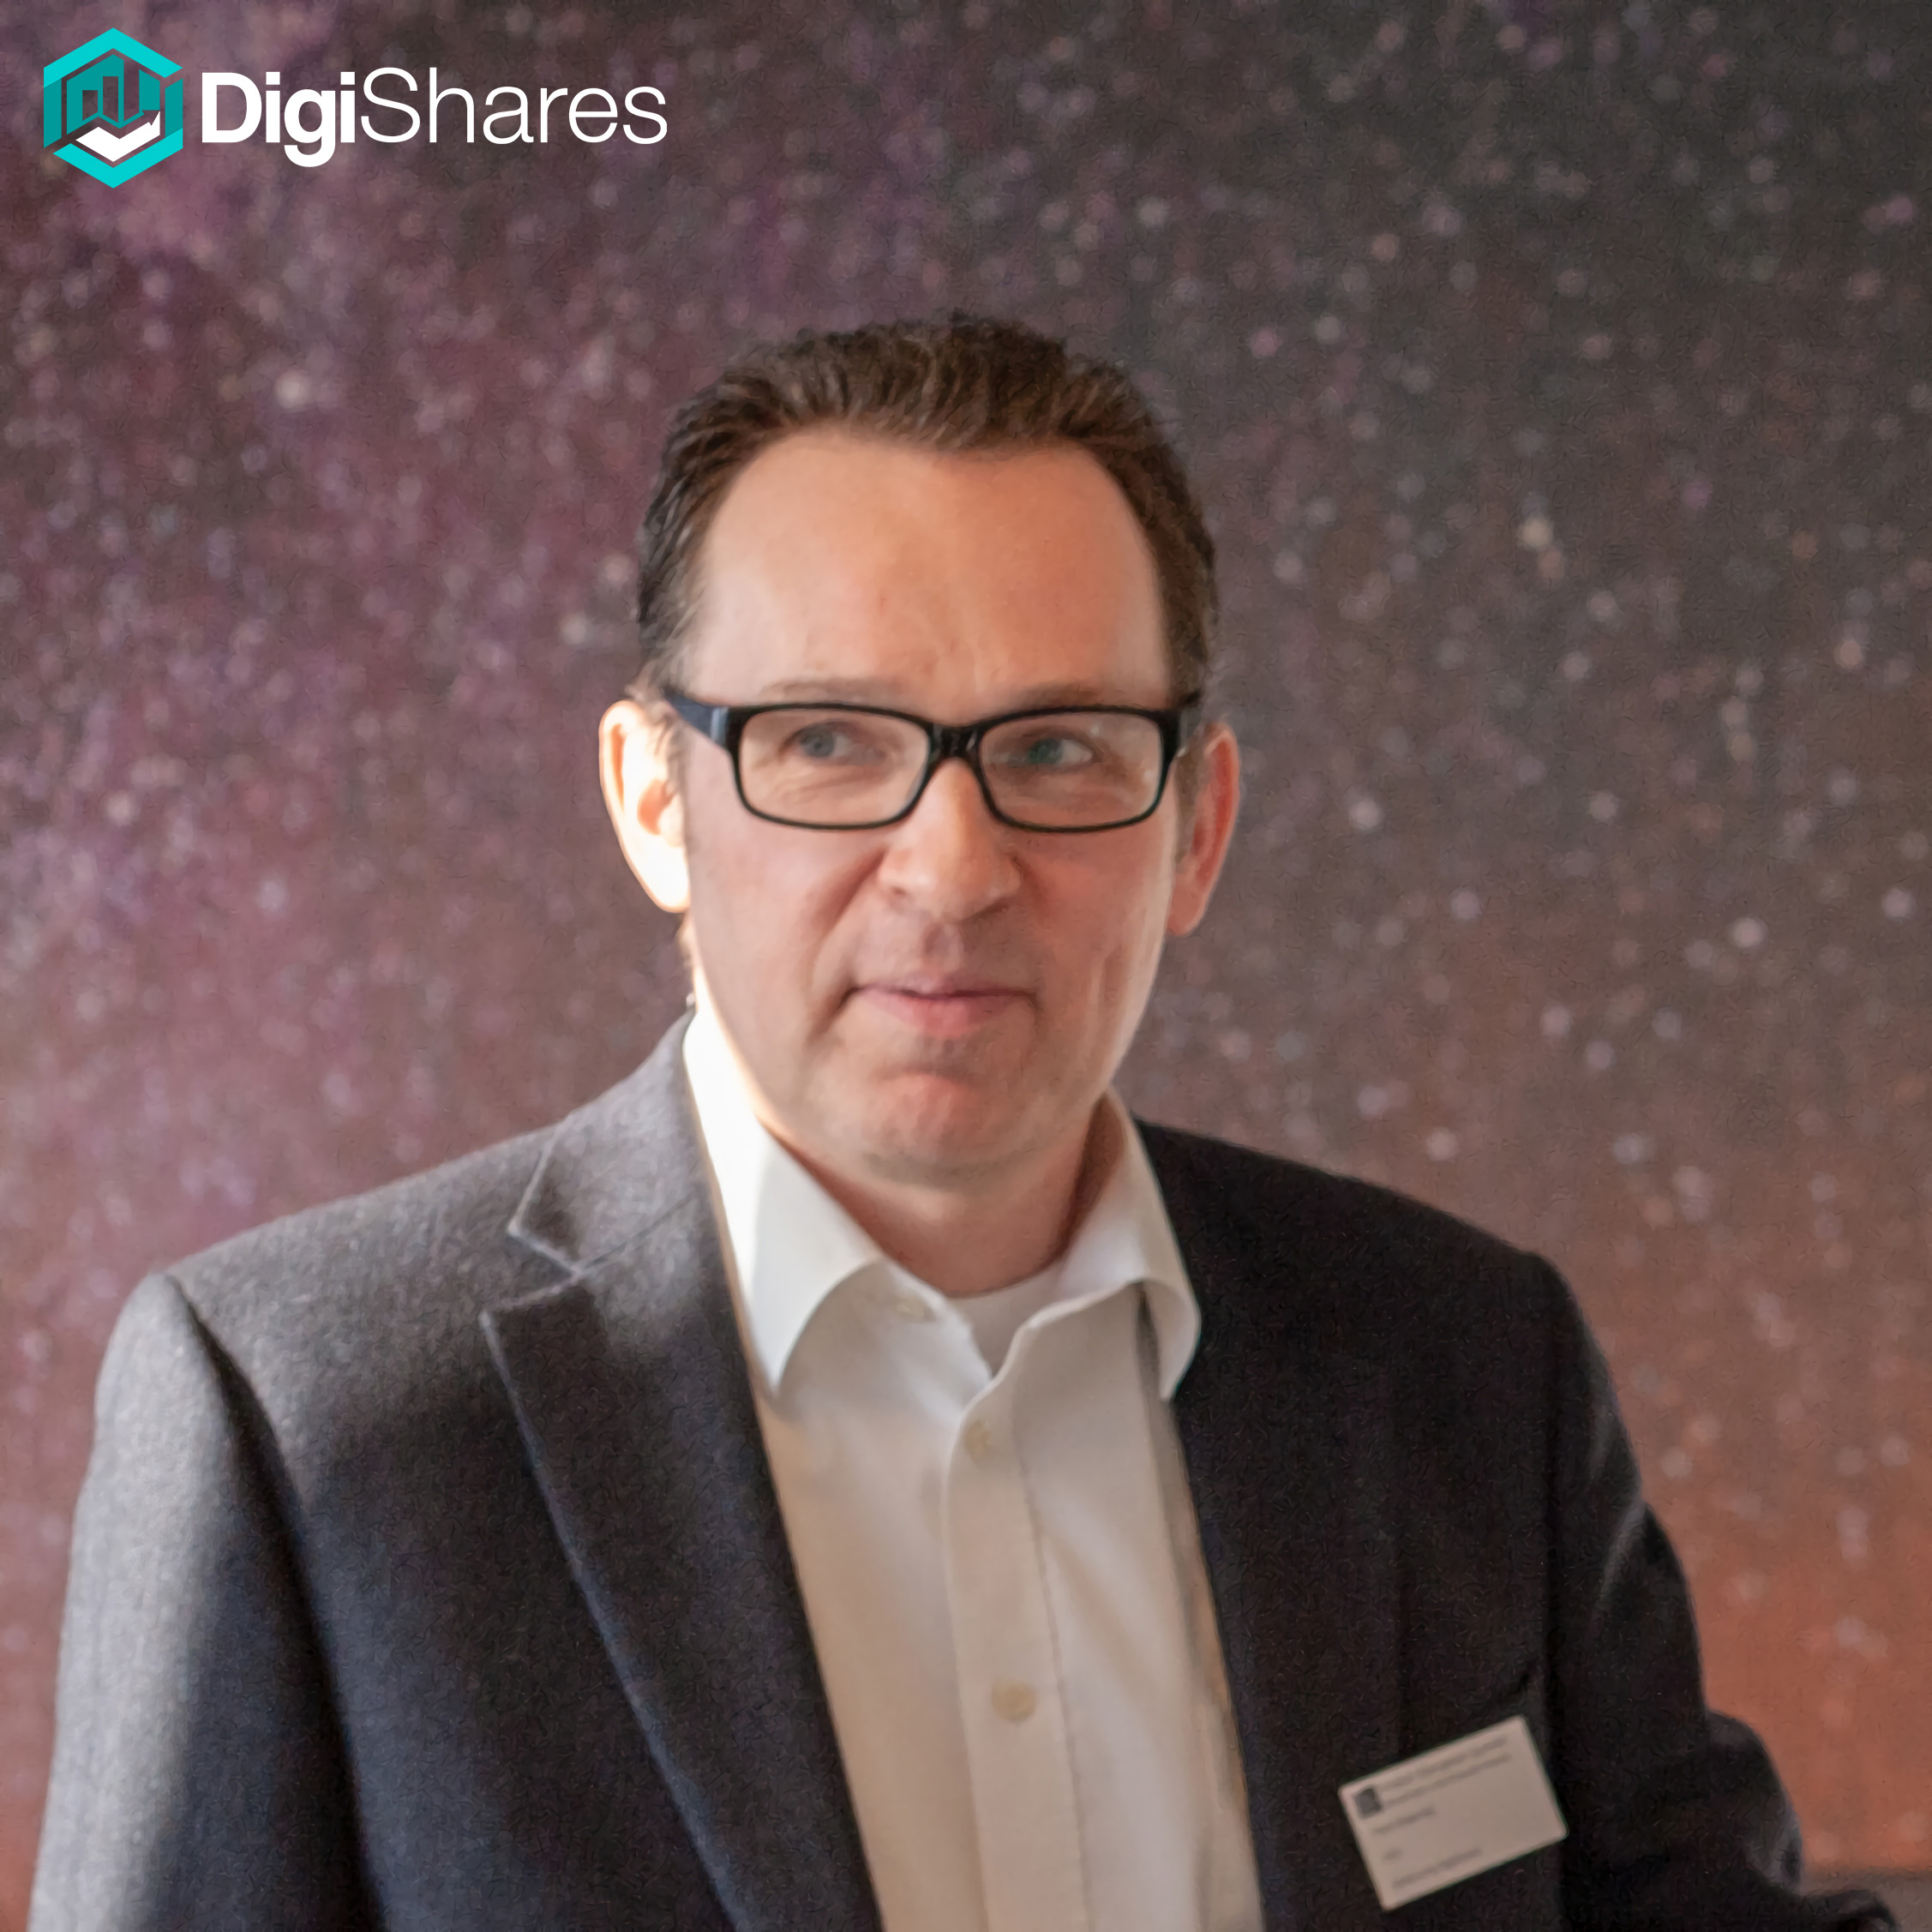 Founder & CEO at DigiSharesTopic:Blockchain and Tokenization for Dummies with Practical Use Cases.